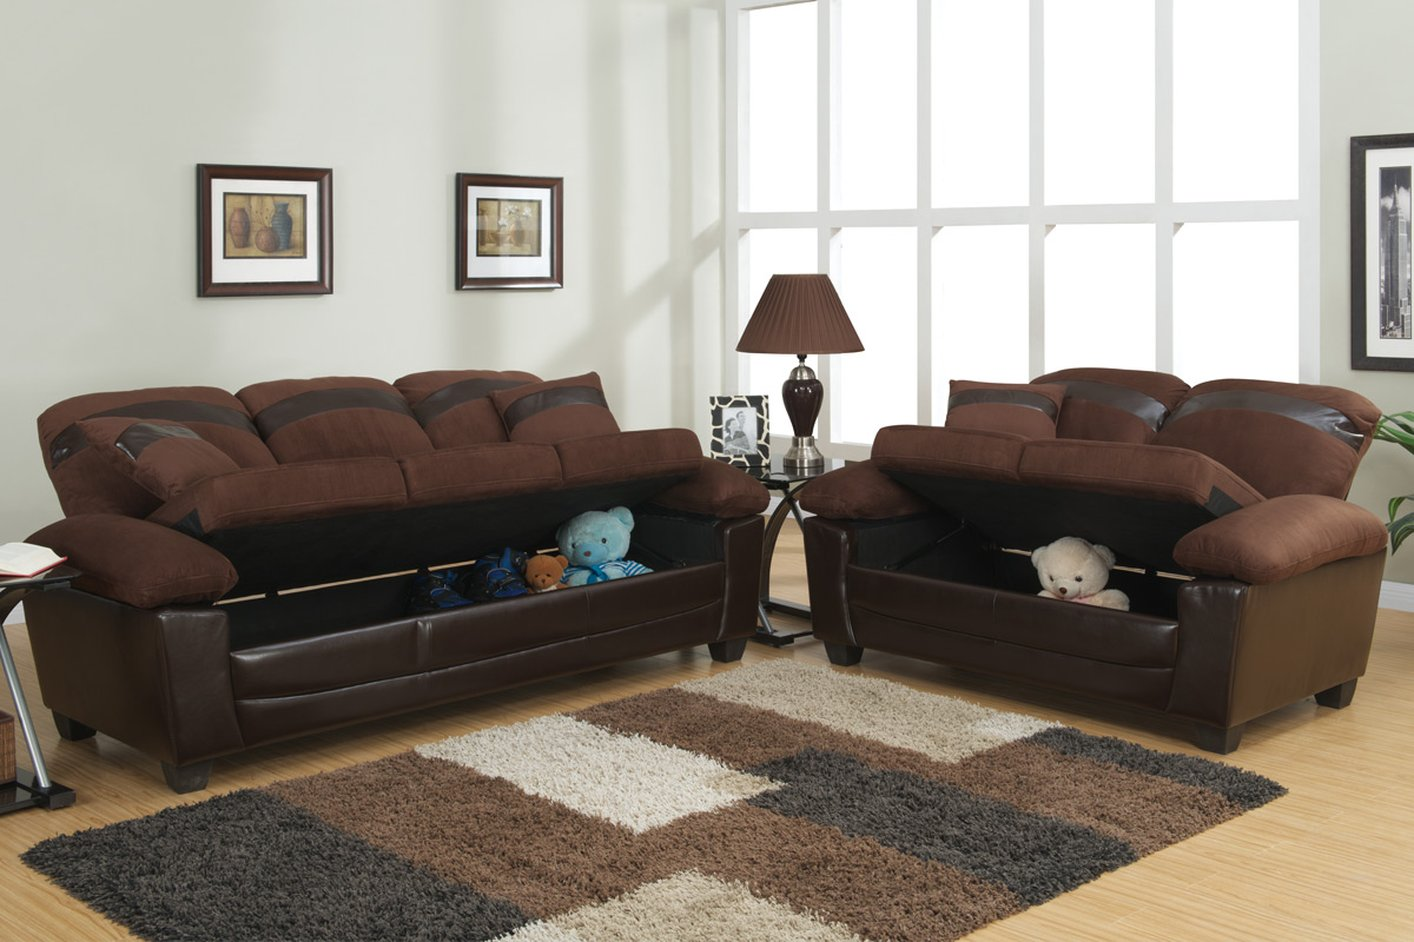 Poundex gabe f7572 brown fabric sofa and loveseat set with storage steal a sofa furniture for Sofa moderne marron gris